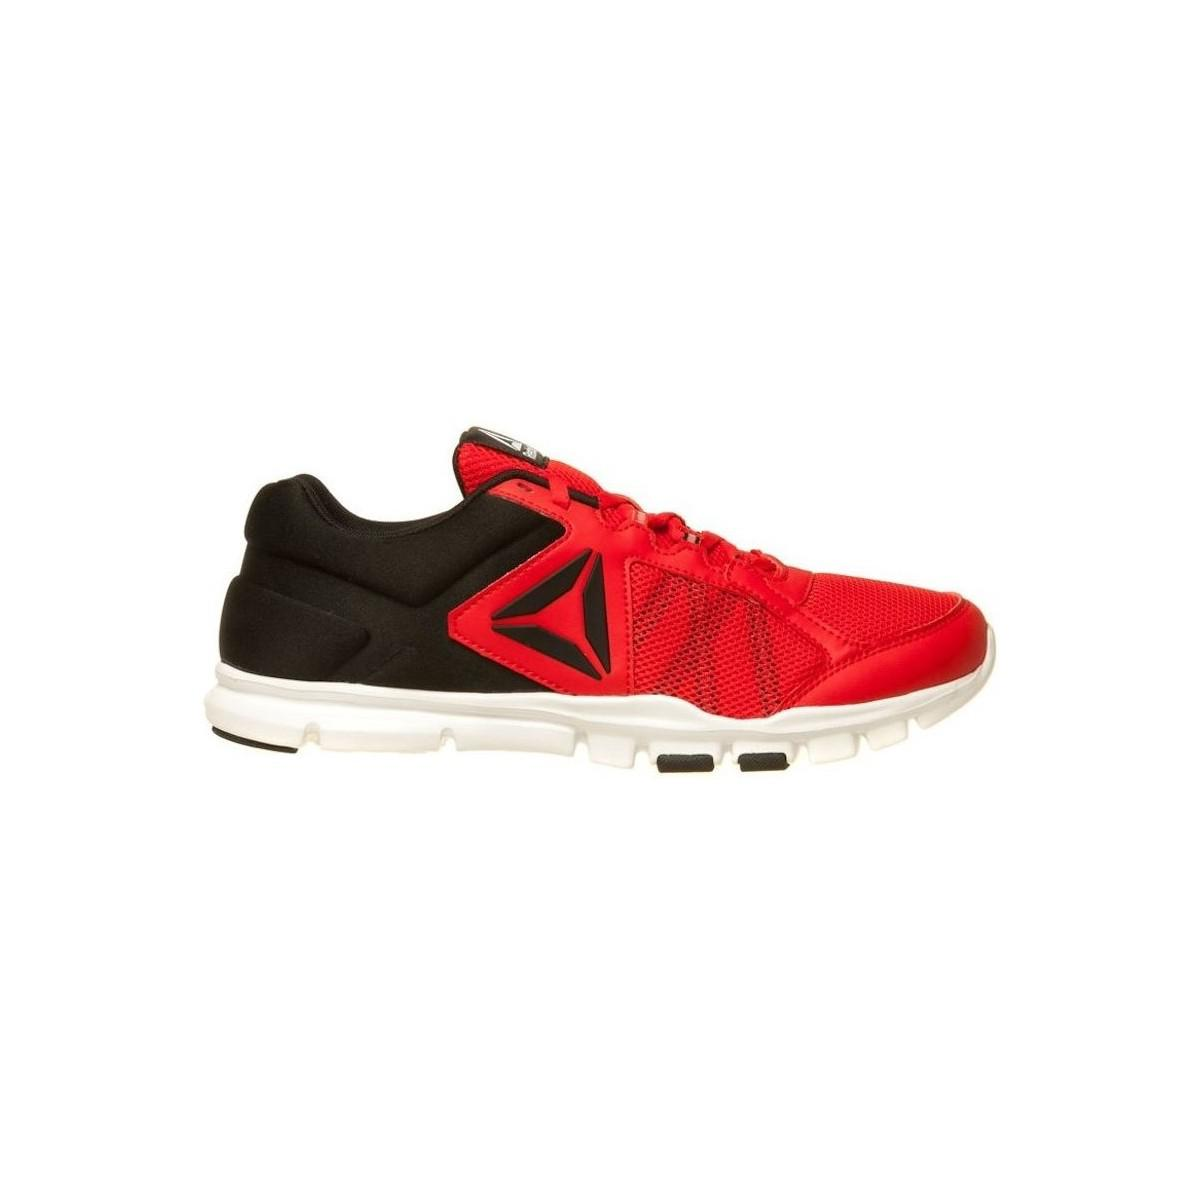 202450e0b9067 Reebok 0 Men s Shoes (trainers) In Red in Red for Men - Lyst